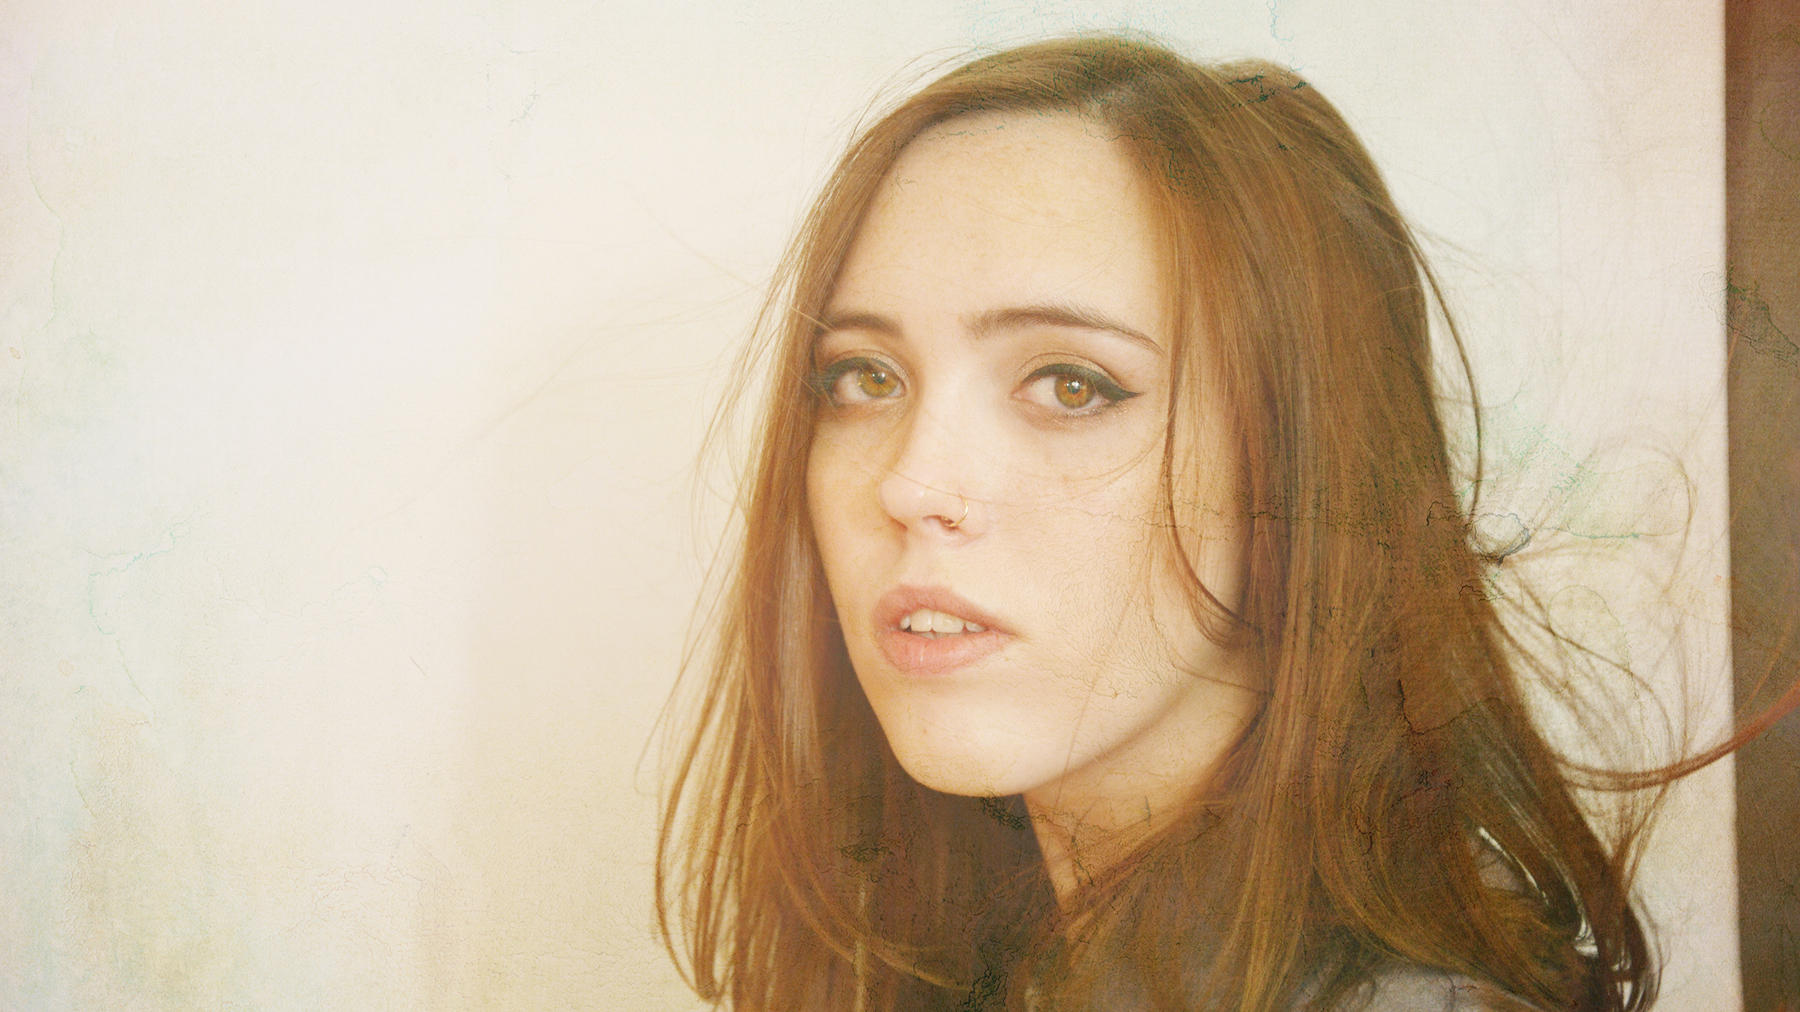 Allisoninlove songs we love: soccer mommy, 'your dog' | 90.5 wesa